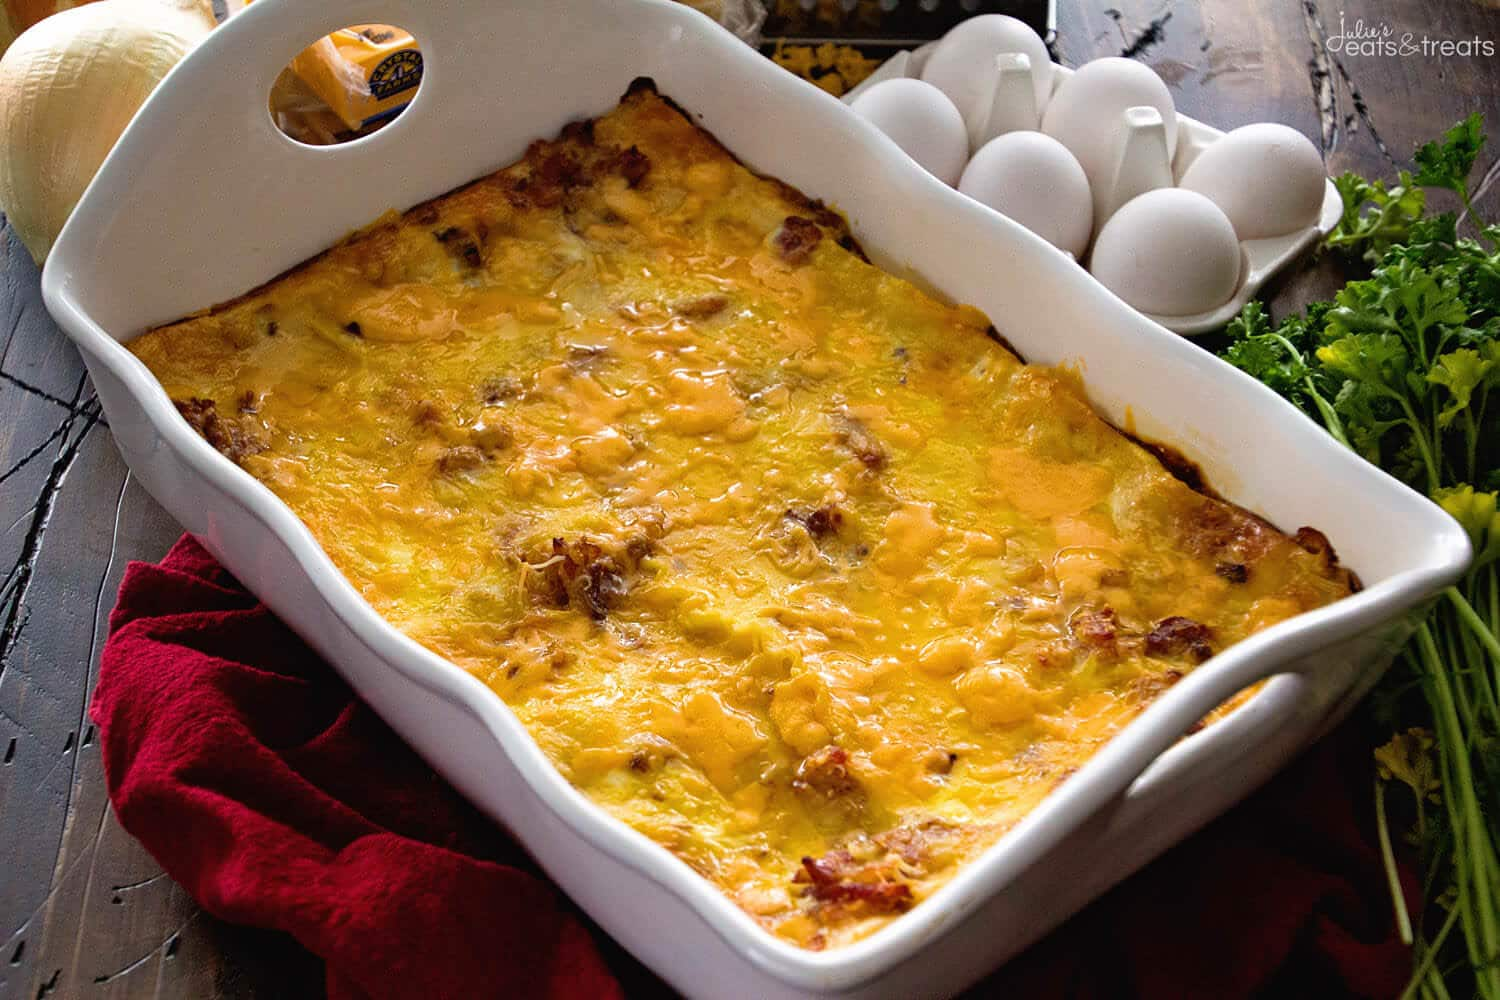 Ham & Cheese Overnight Breakfast Lasagna Recipe ~ Layers of Lasagna Noodles Stuffed with a Delicious Cheese Sauce, Bacon and More Cheese! Prep this the Night Before and Enjoy it for Breakfast or Brunch!